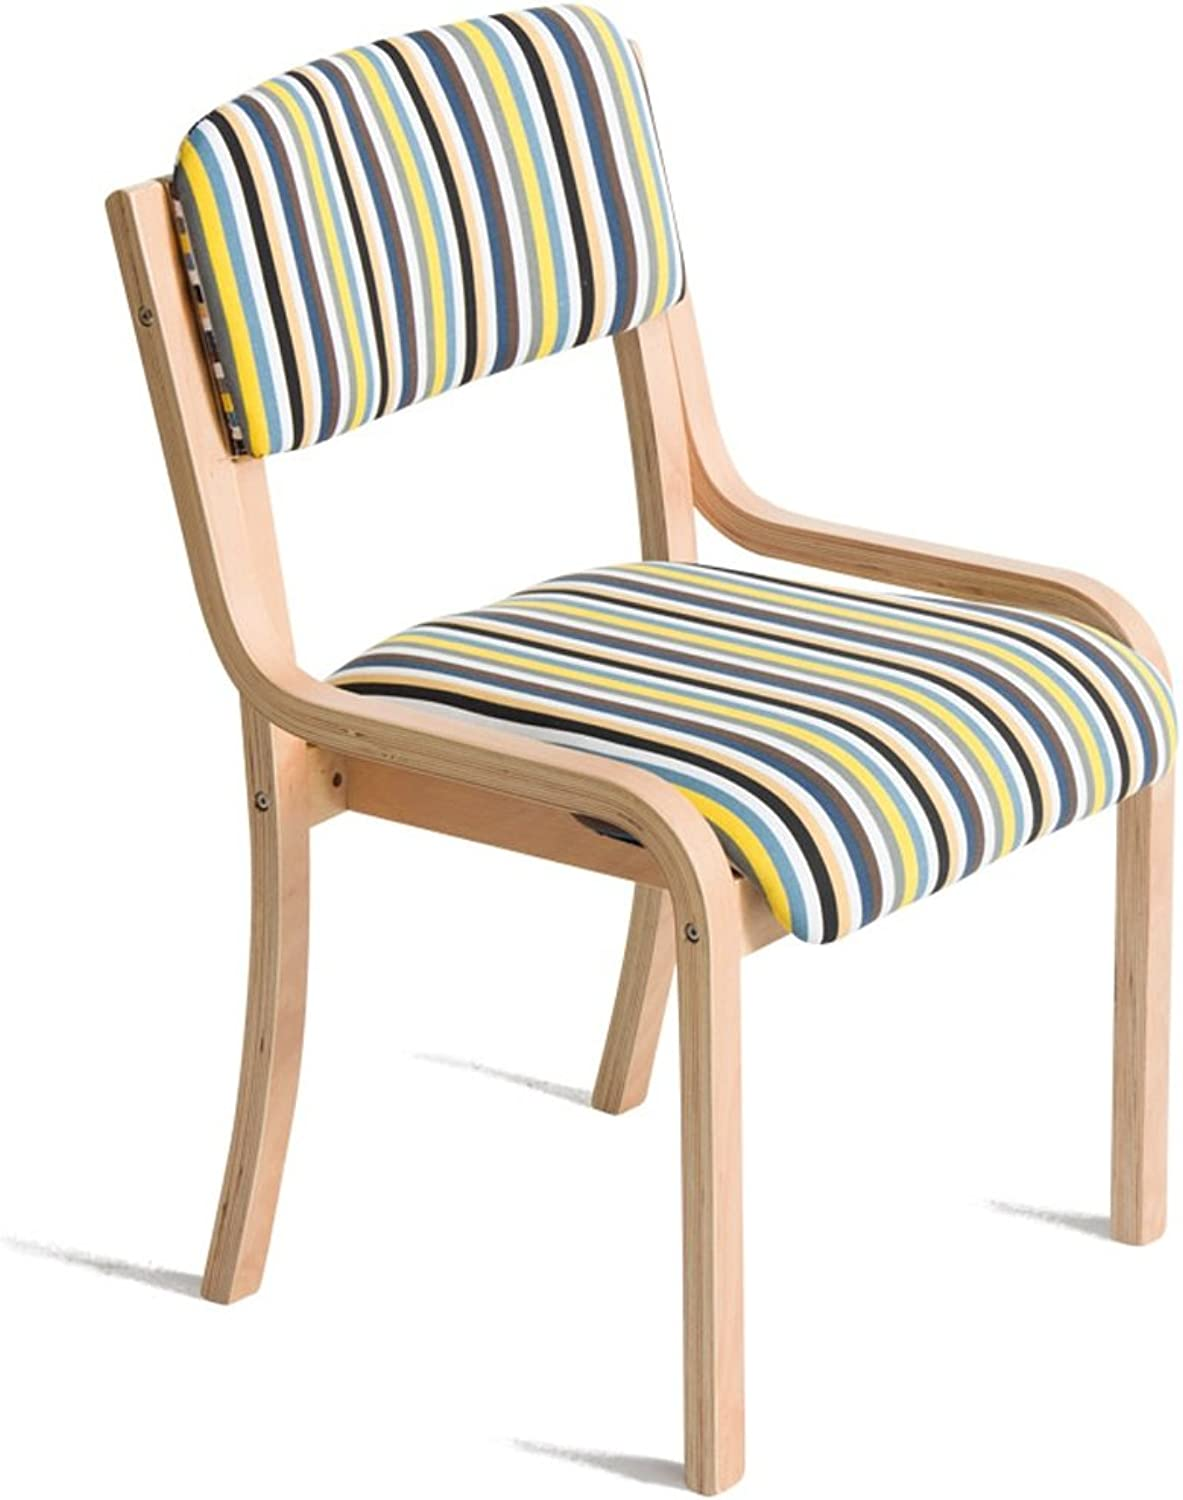 Chairs Dining Chairs Simple Chairs Leisure Chairs Solid Wood Fabric Dining Table Chairs Washable Sedentary Comfortable